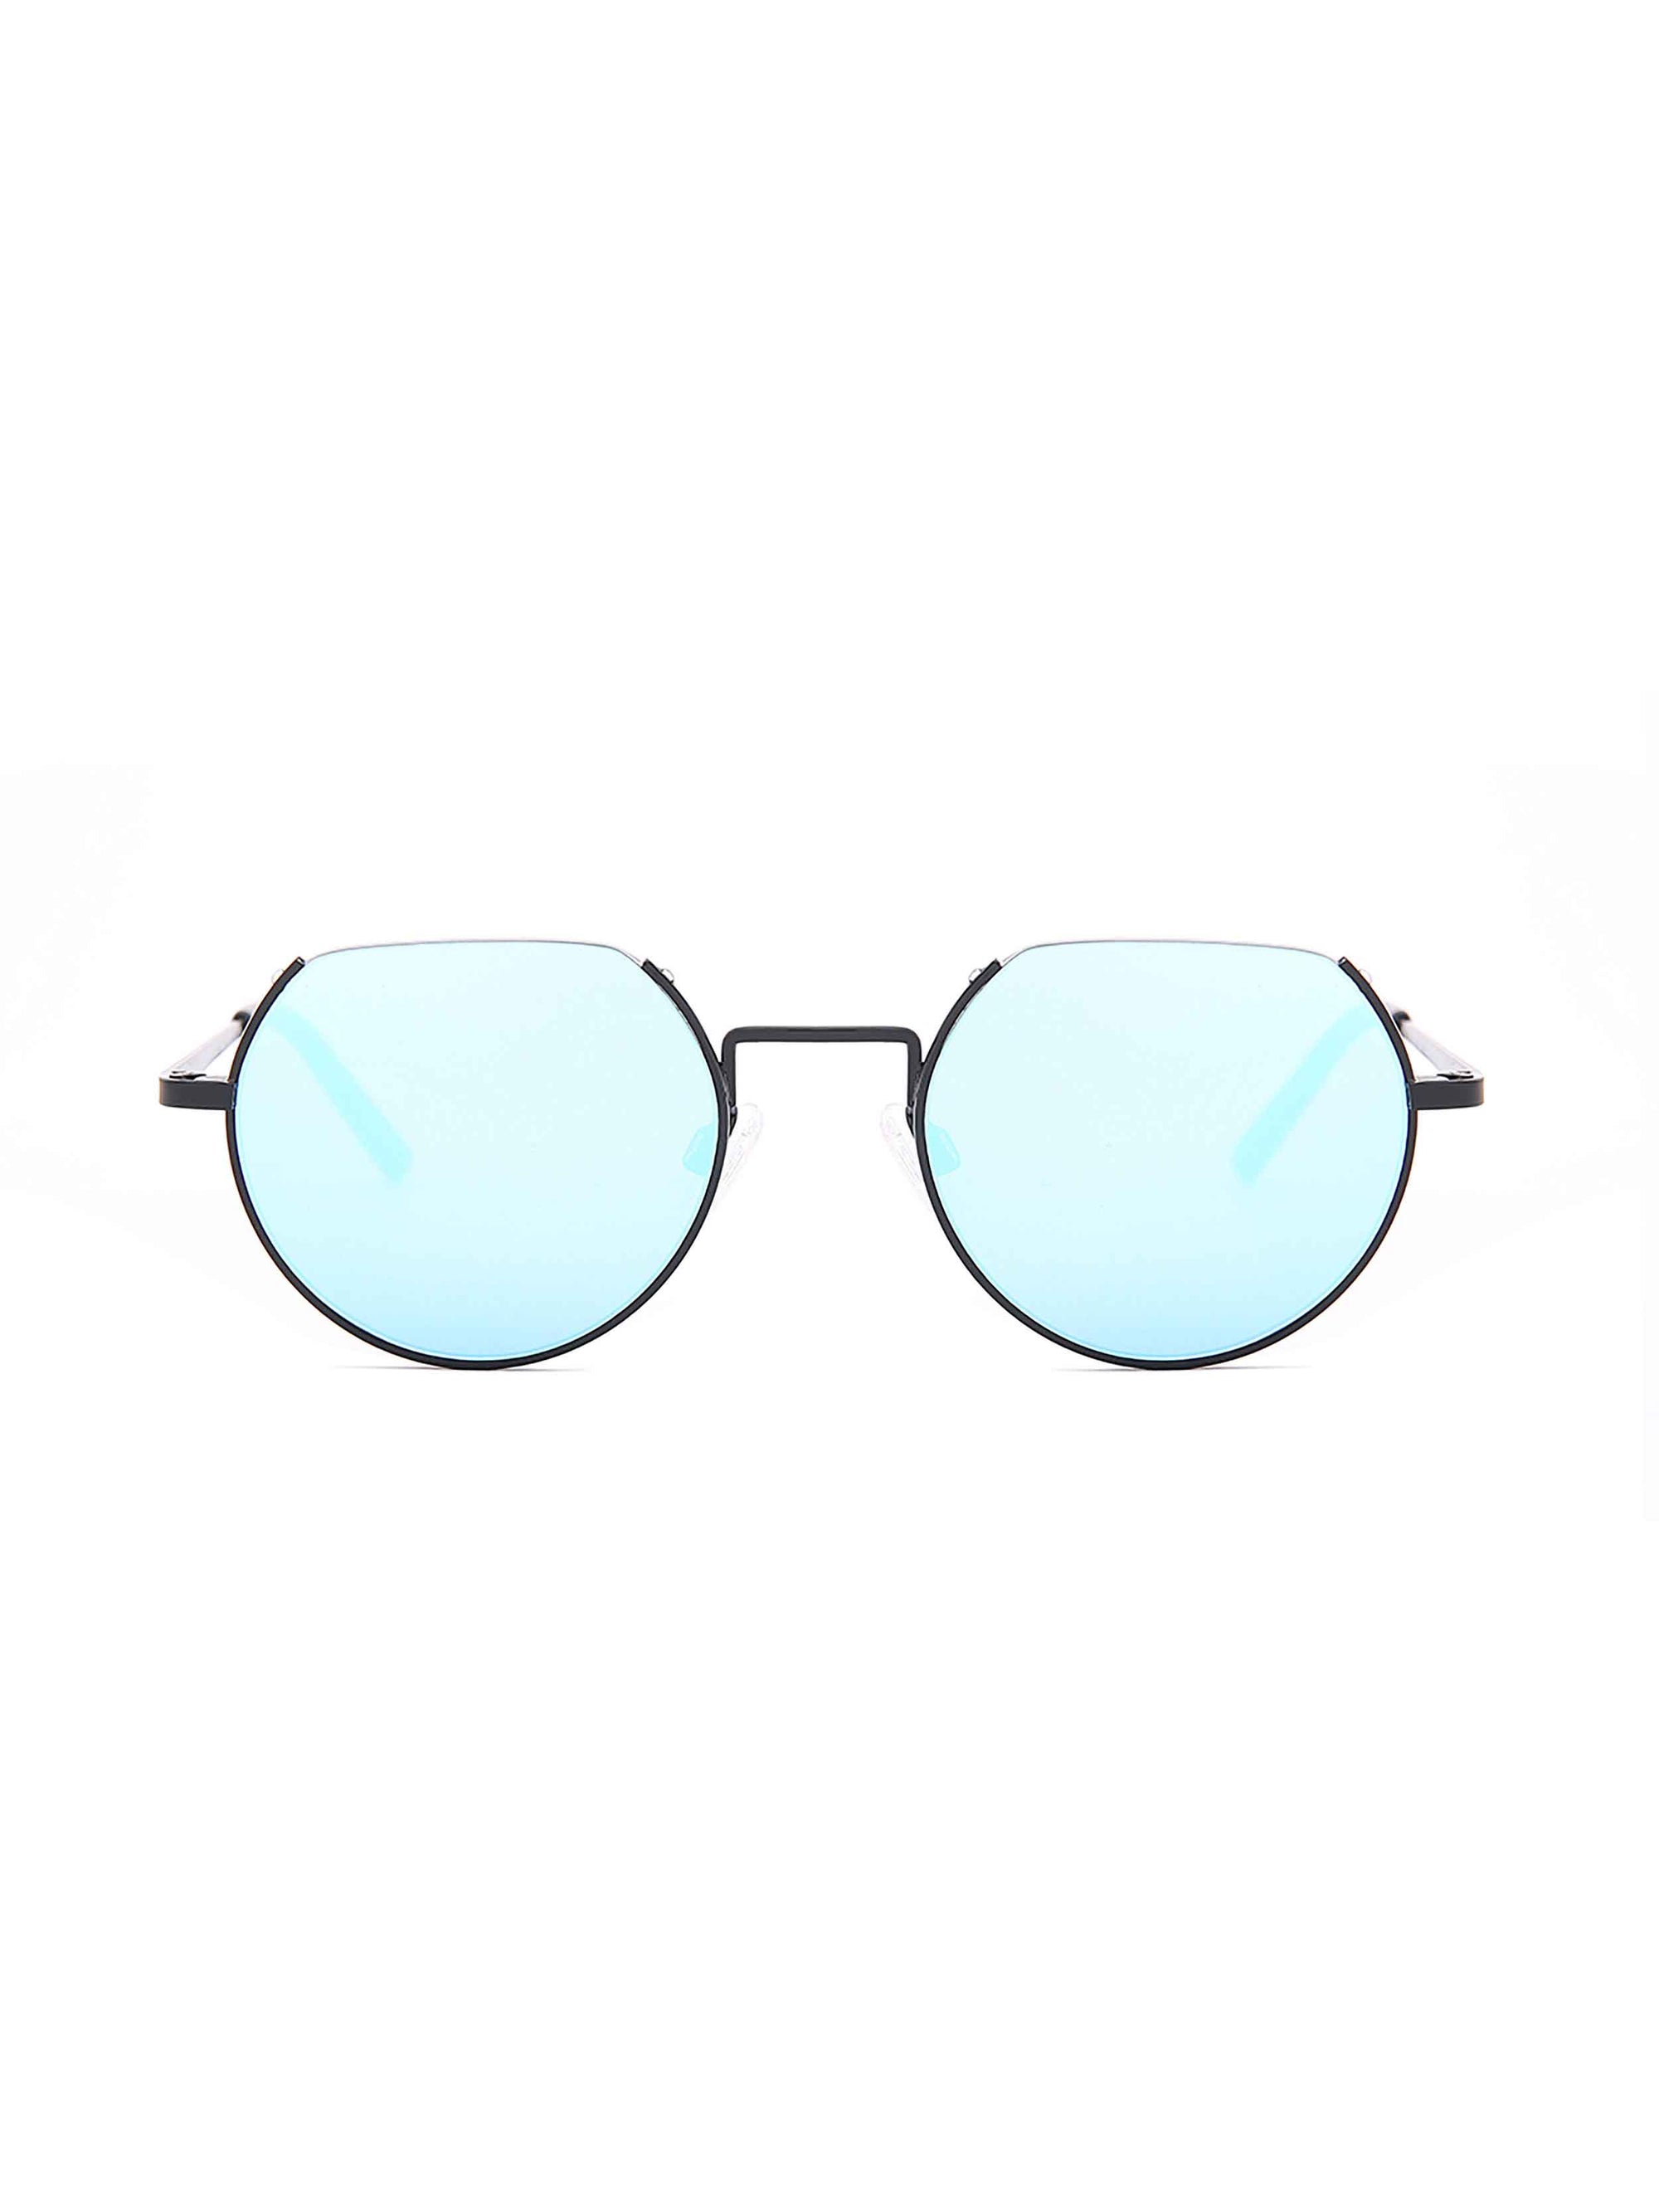 Lentes Carolina Lemke CL6609 08